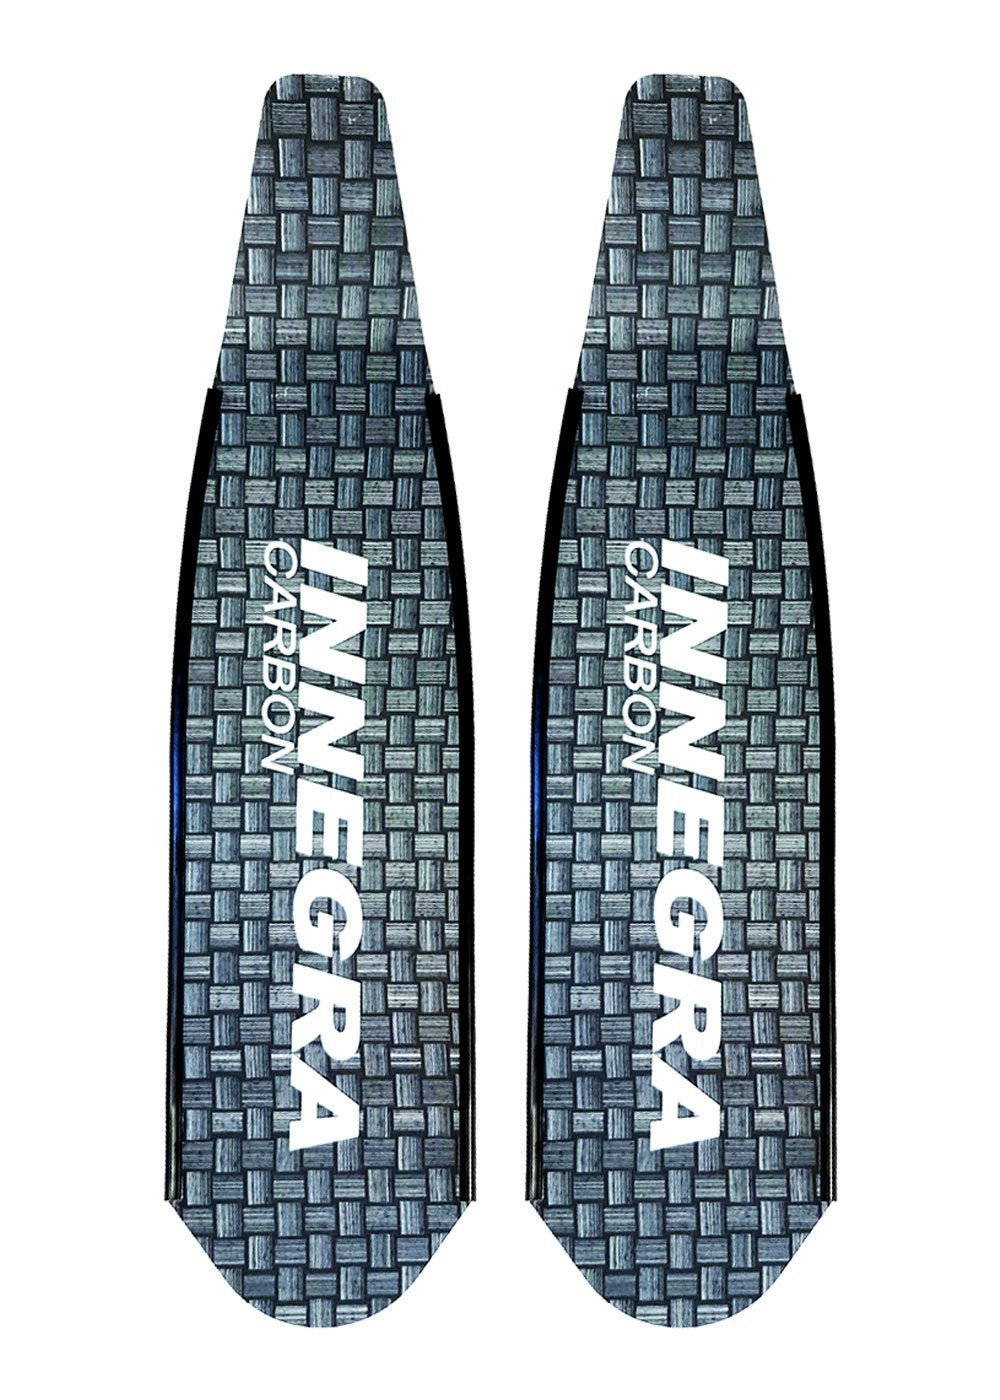 DiveR Carbon Innegra Freediving Fin Blades